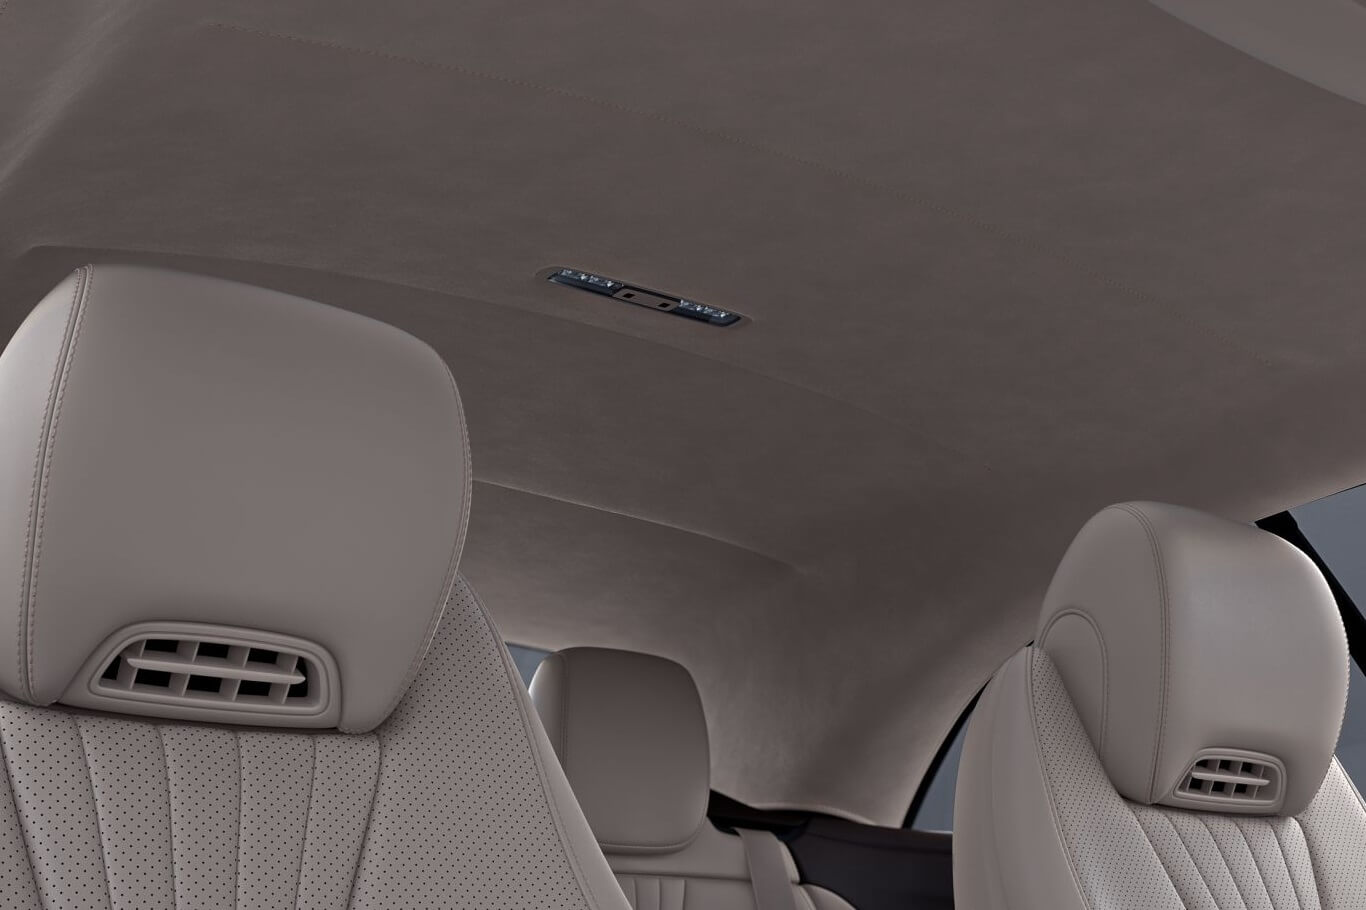 6 Best headliner adhesives a one-time solution to fix your car headliner